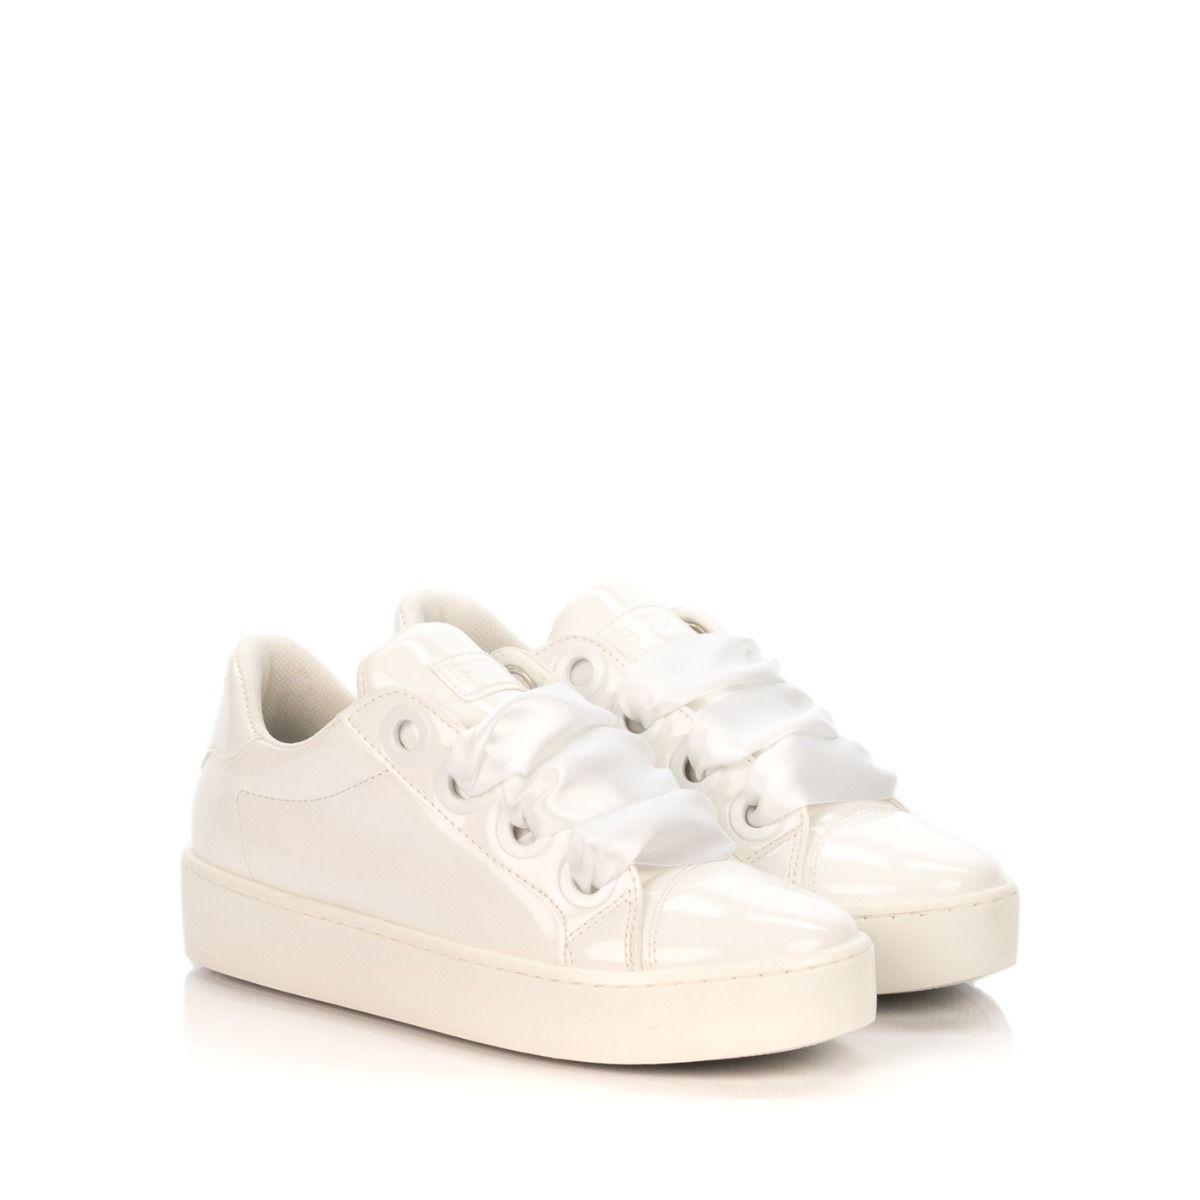 f3eff11271 GUESS SNEAKERS DONNA URN1 VERNICE BIANCA